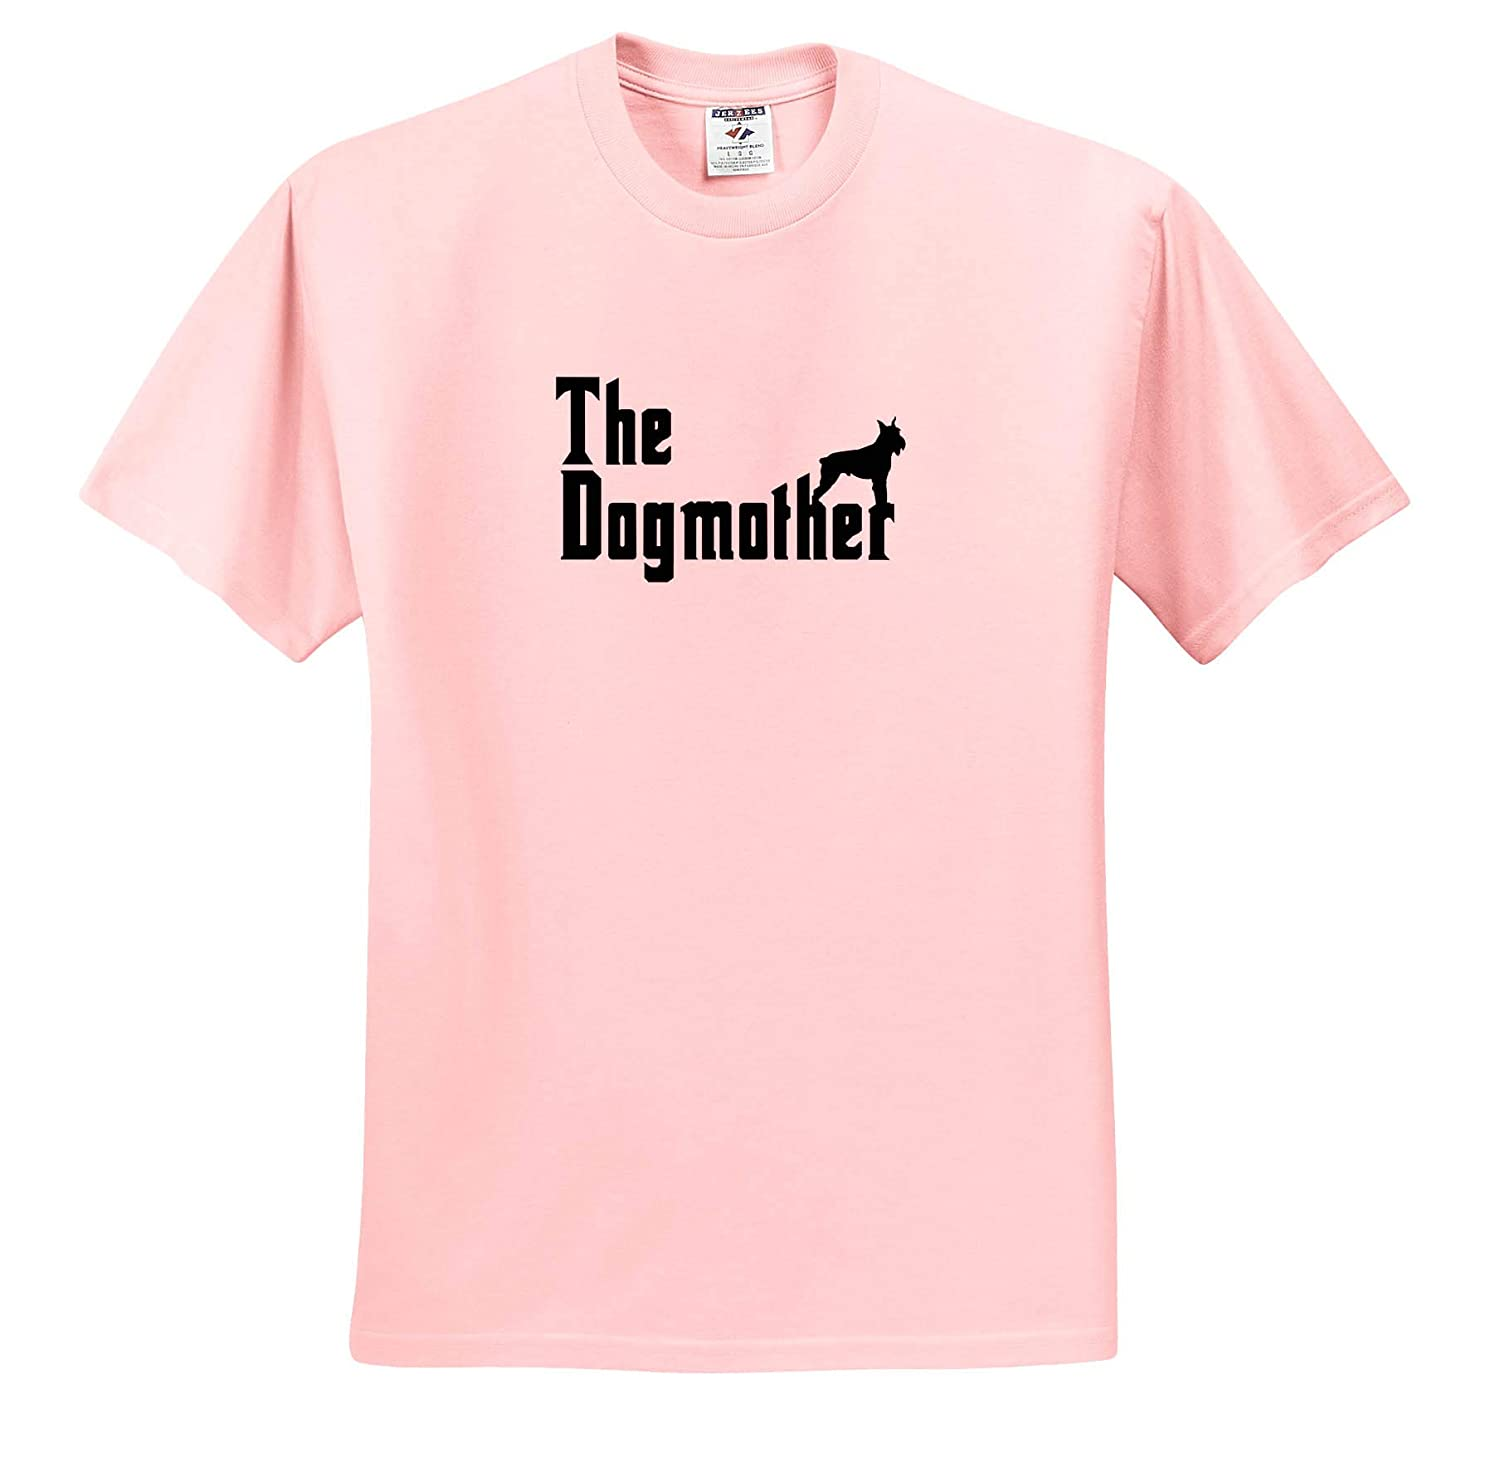 T-Shirts The Dogmother Schnauzer Silhouette Funny Dog 3dRose Carsten Reisinger Illustrations